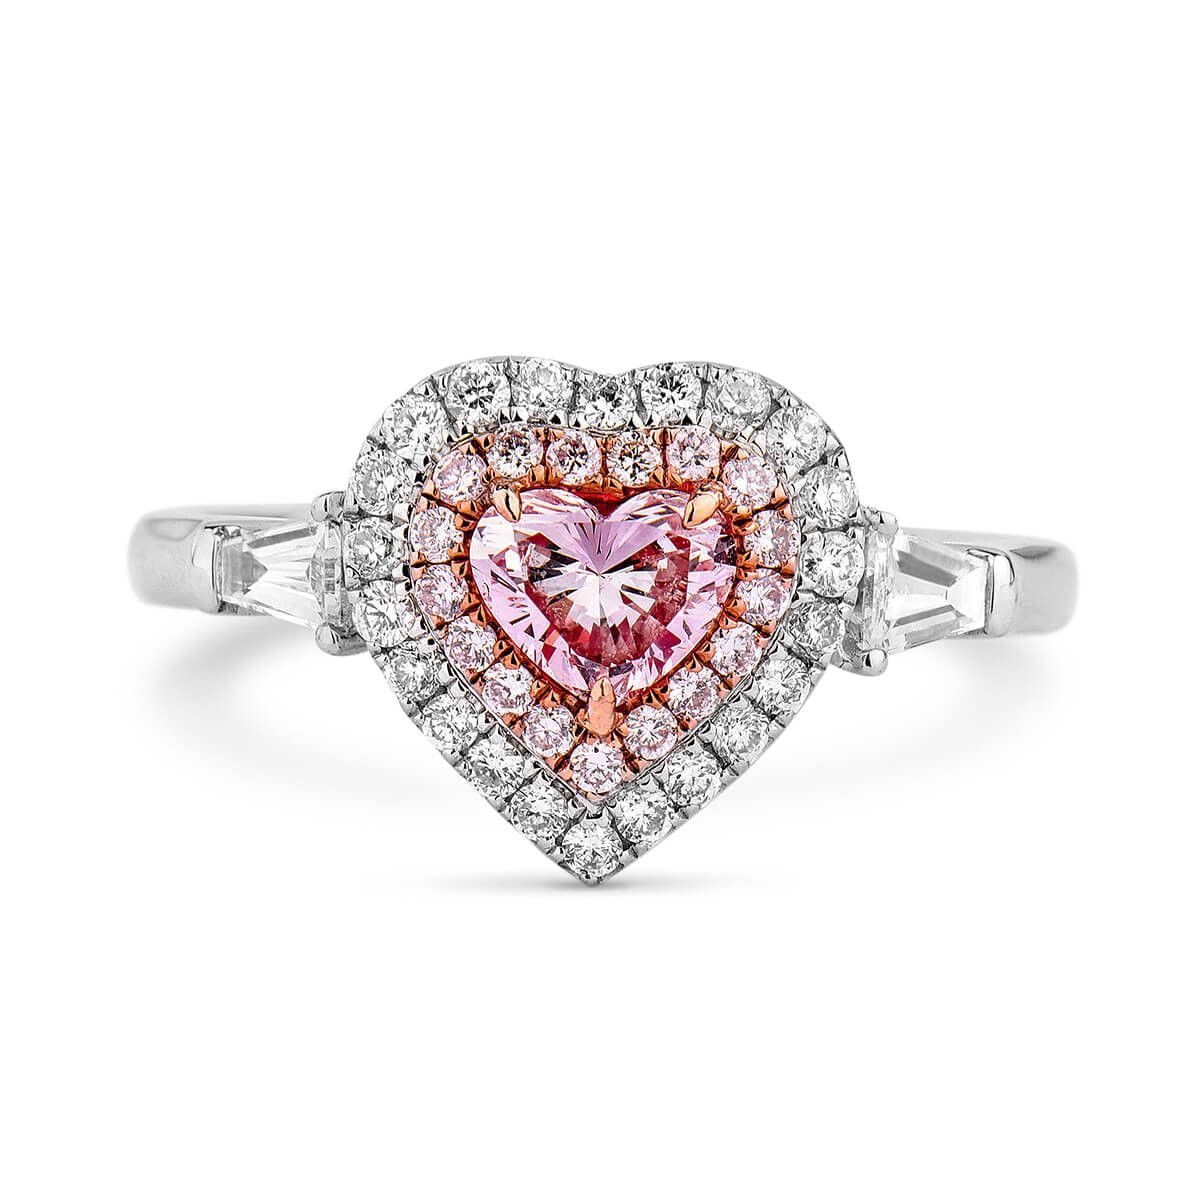 diamond jewellery for engagement engagementringsre from nyc large halo cfm rings mdc diamonds round pink ring